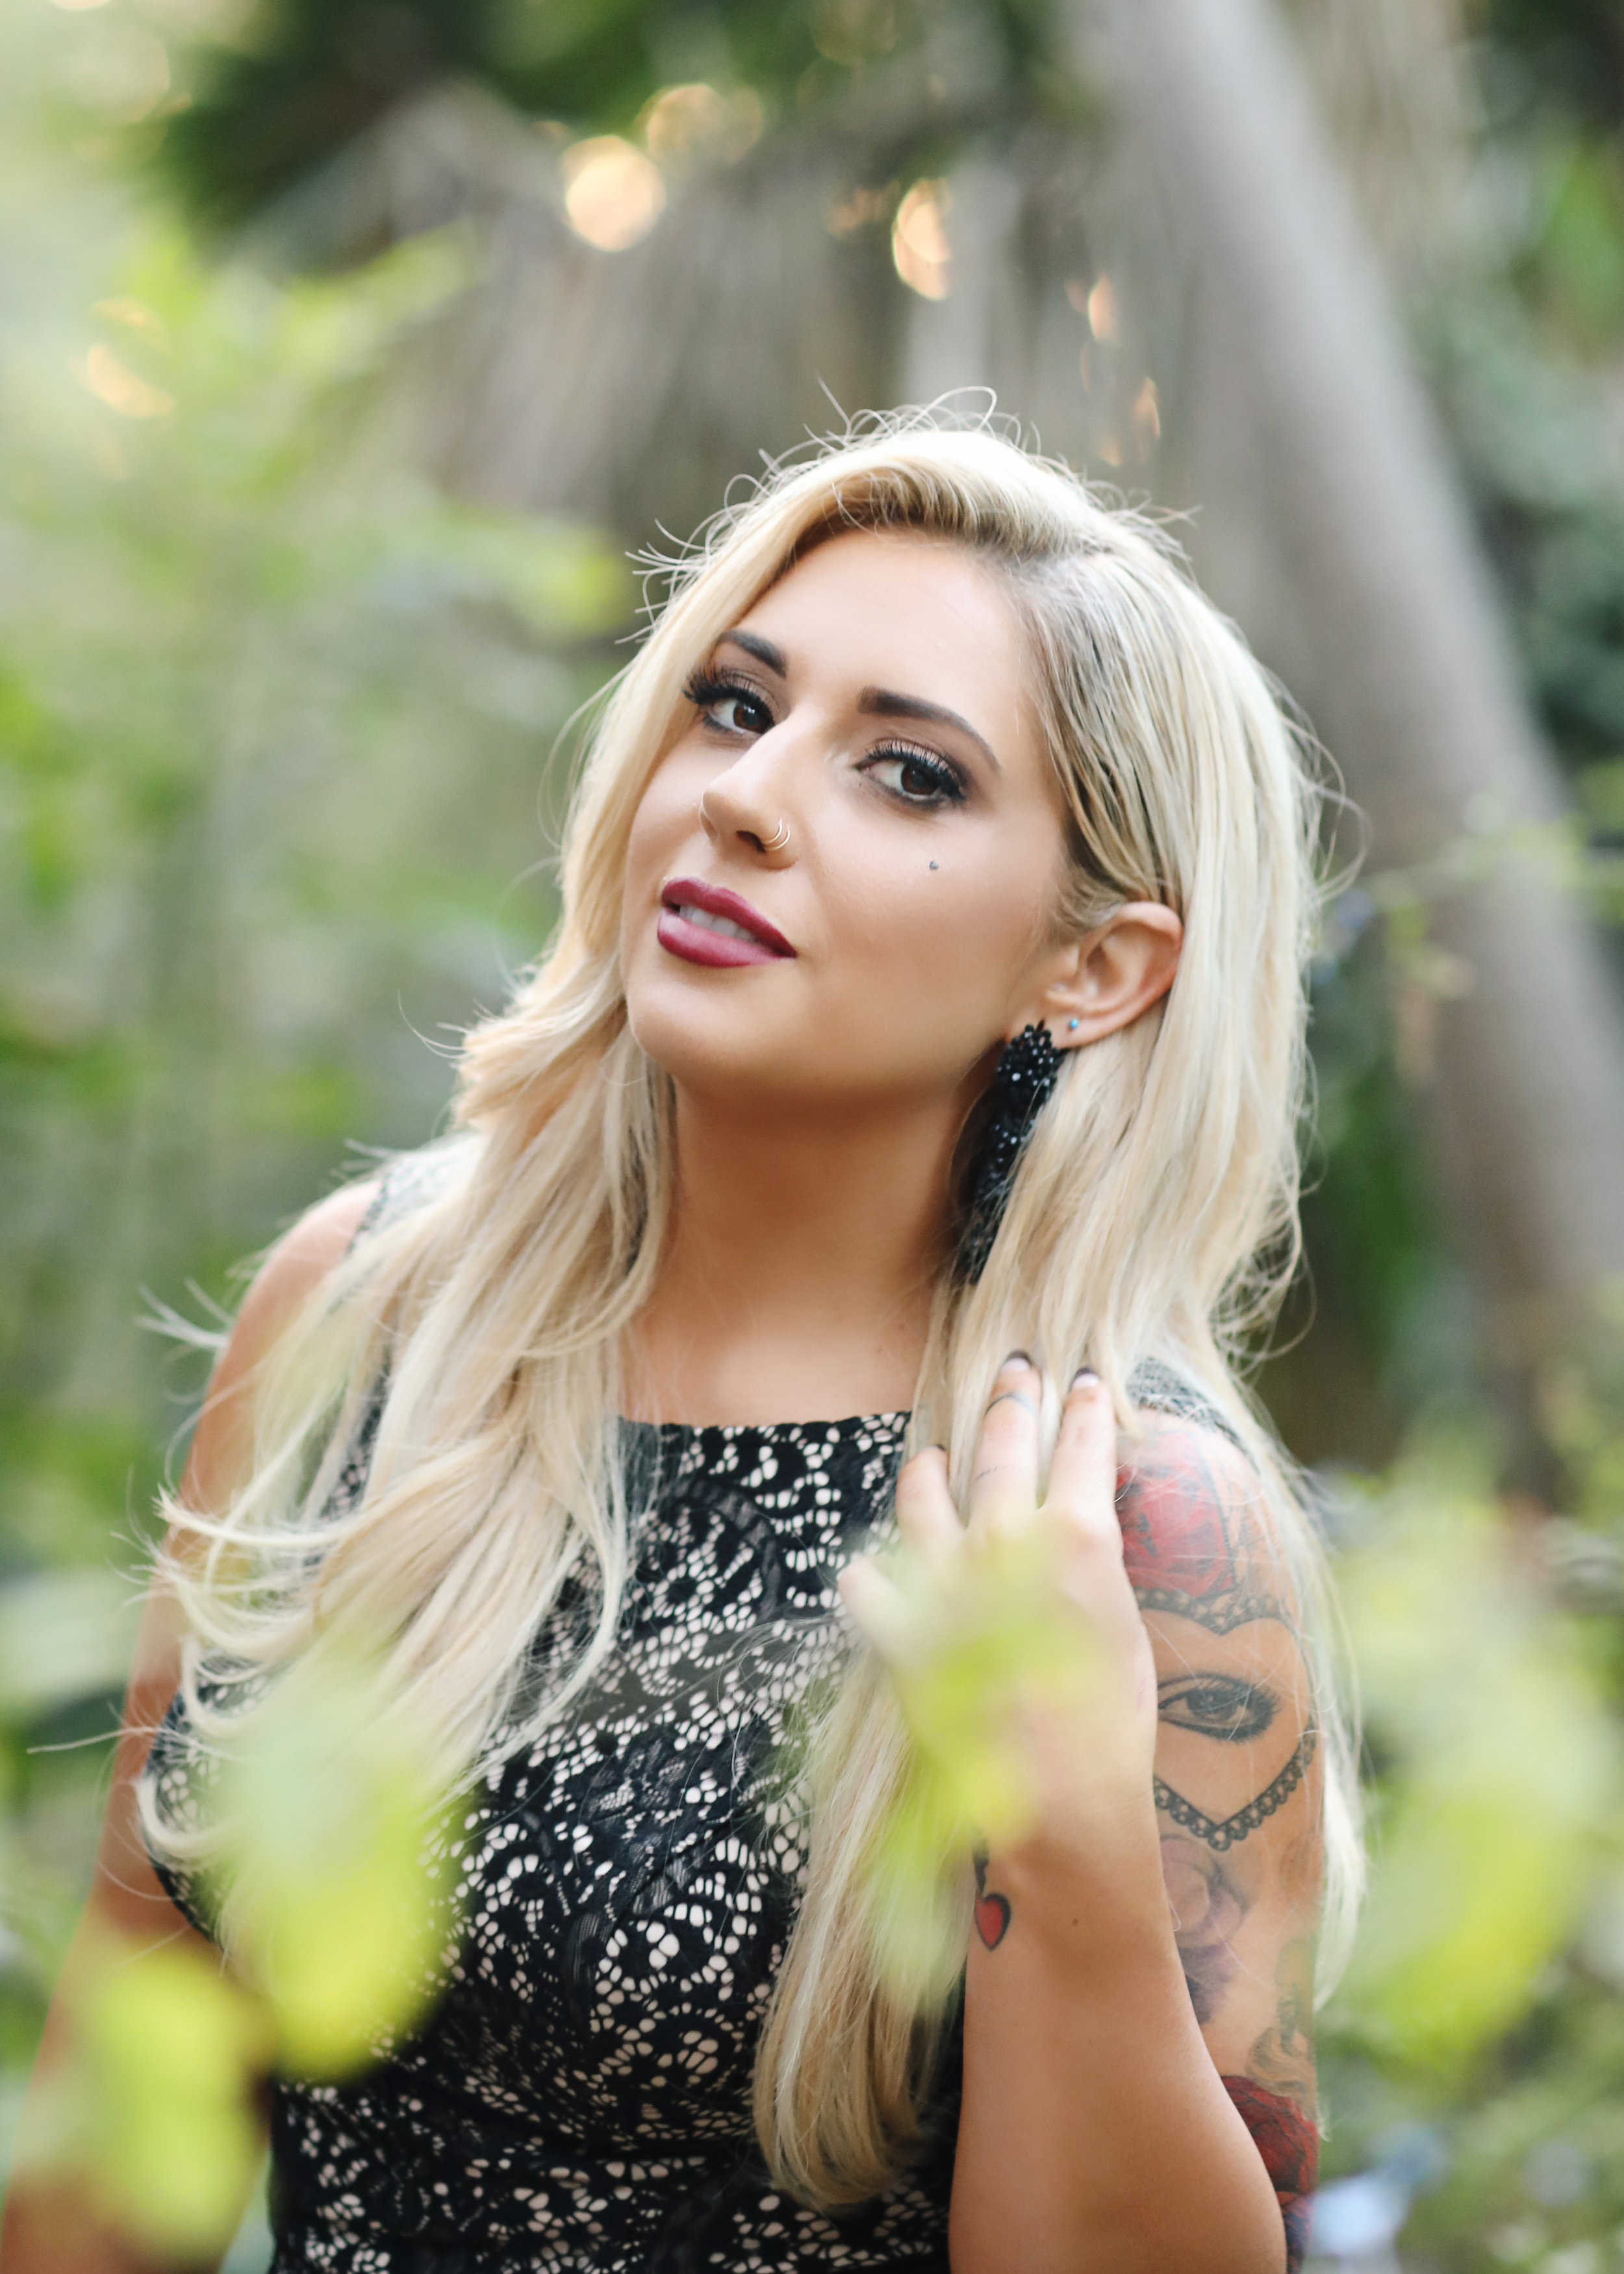 Blond haired bride in a black wedding dress. Tattoos.